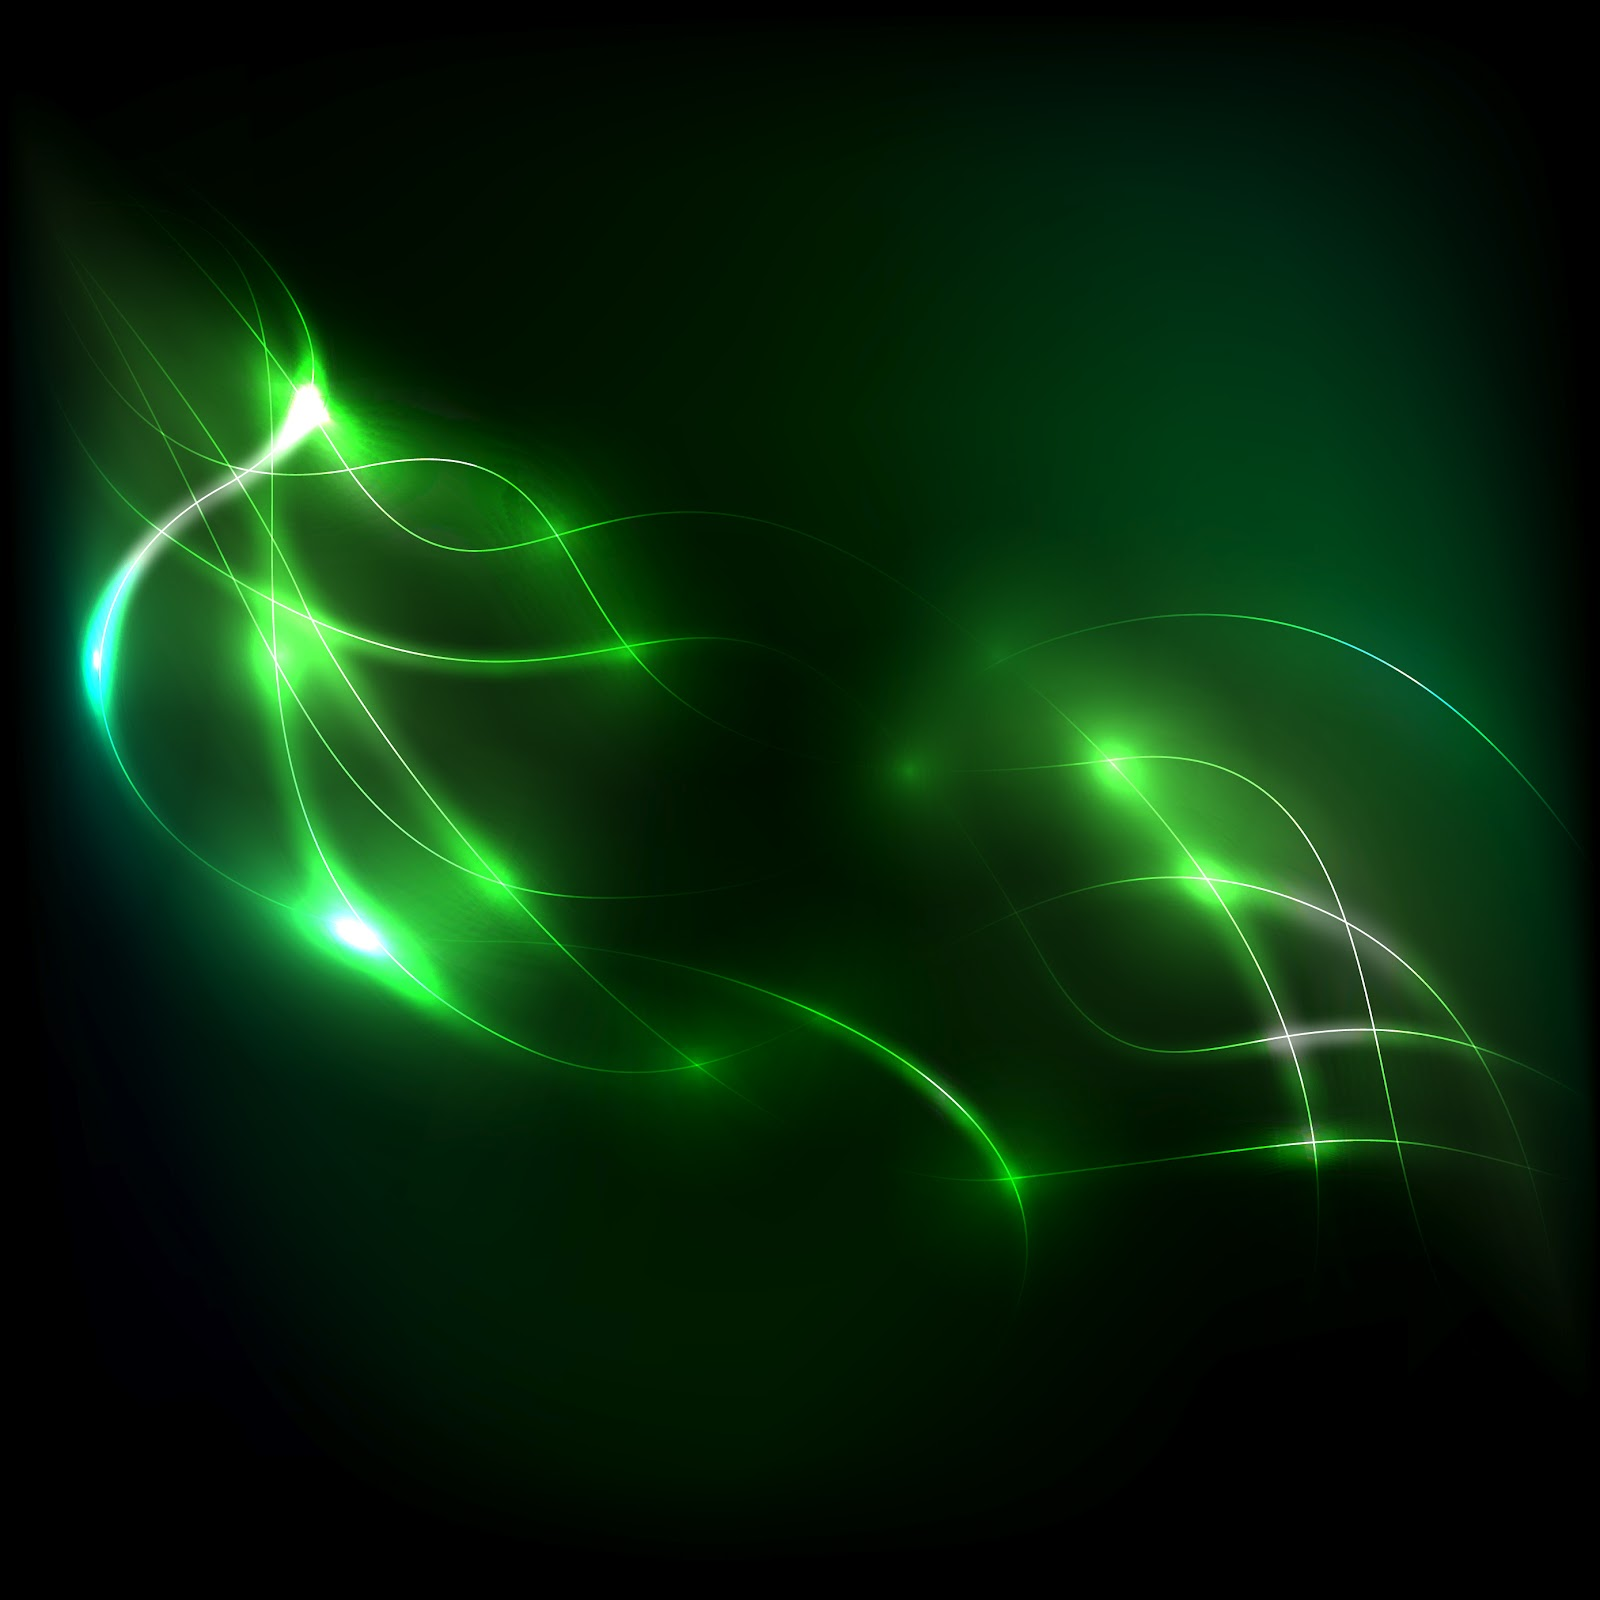 Green Background Widescreen HD #6852 Wallpaper